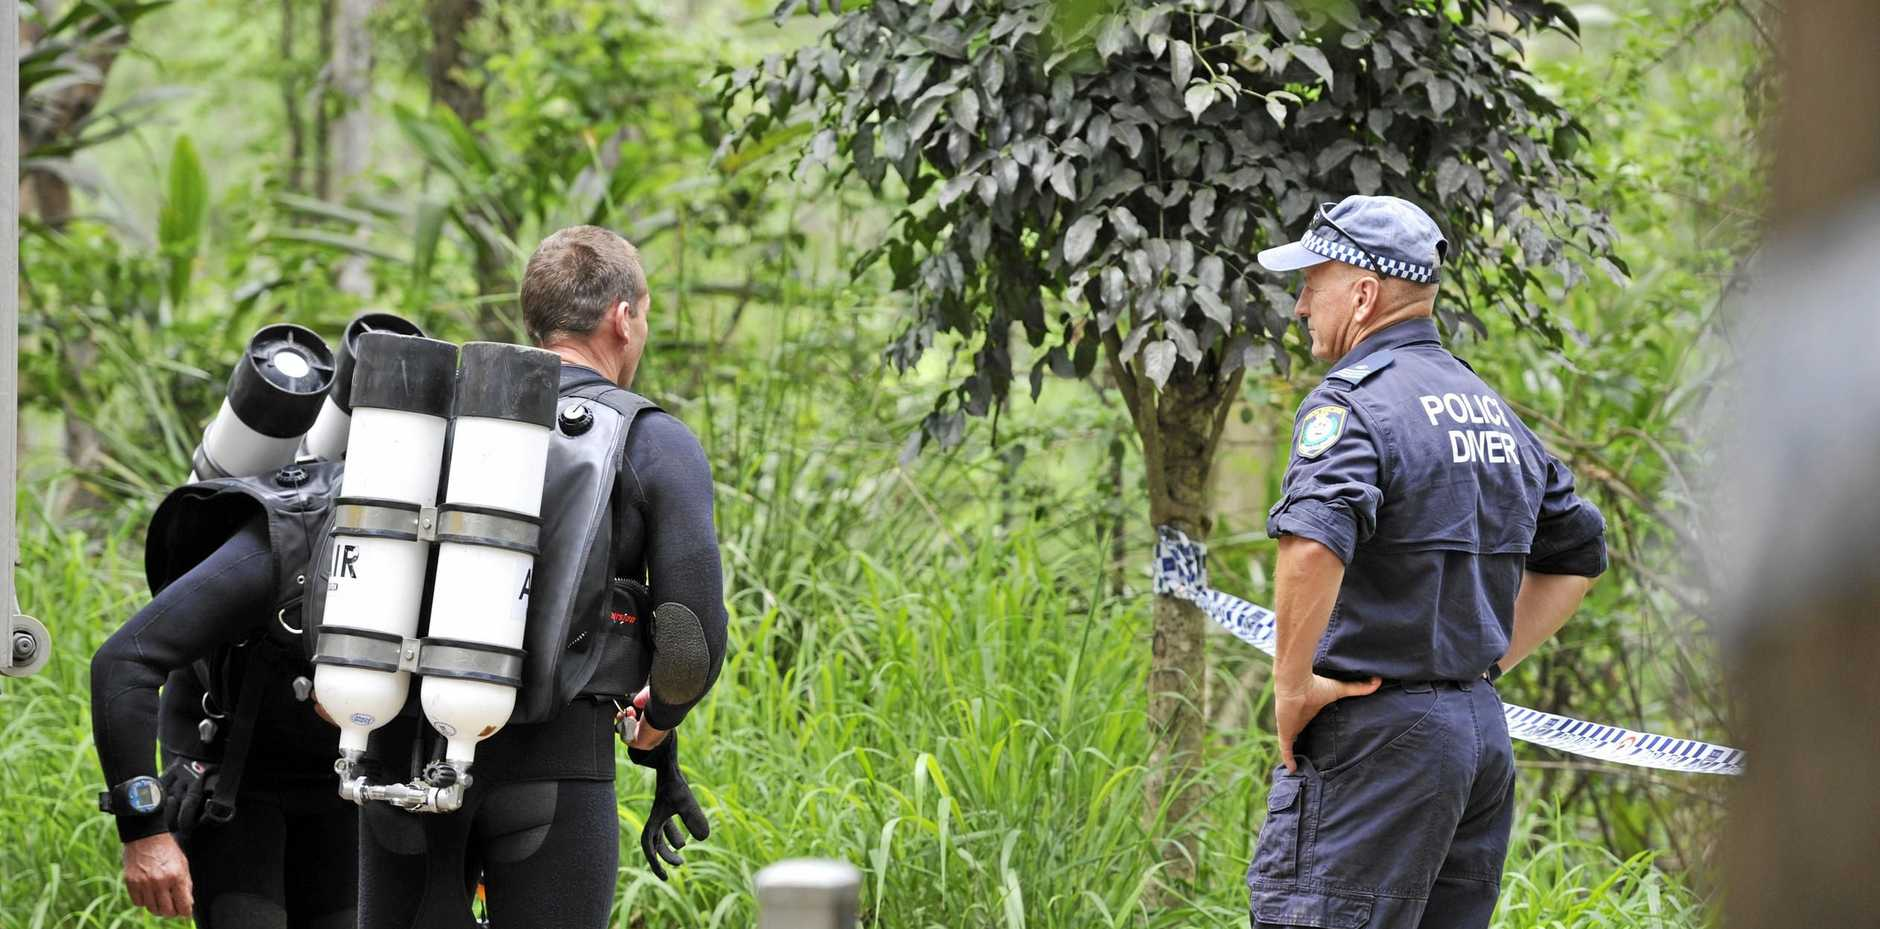 Police divers attend the scene at Hanging Rock Falls waterhole where a man went missing. Photo Marc Stapelberg / The Northern Star